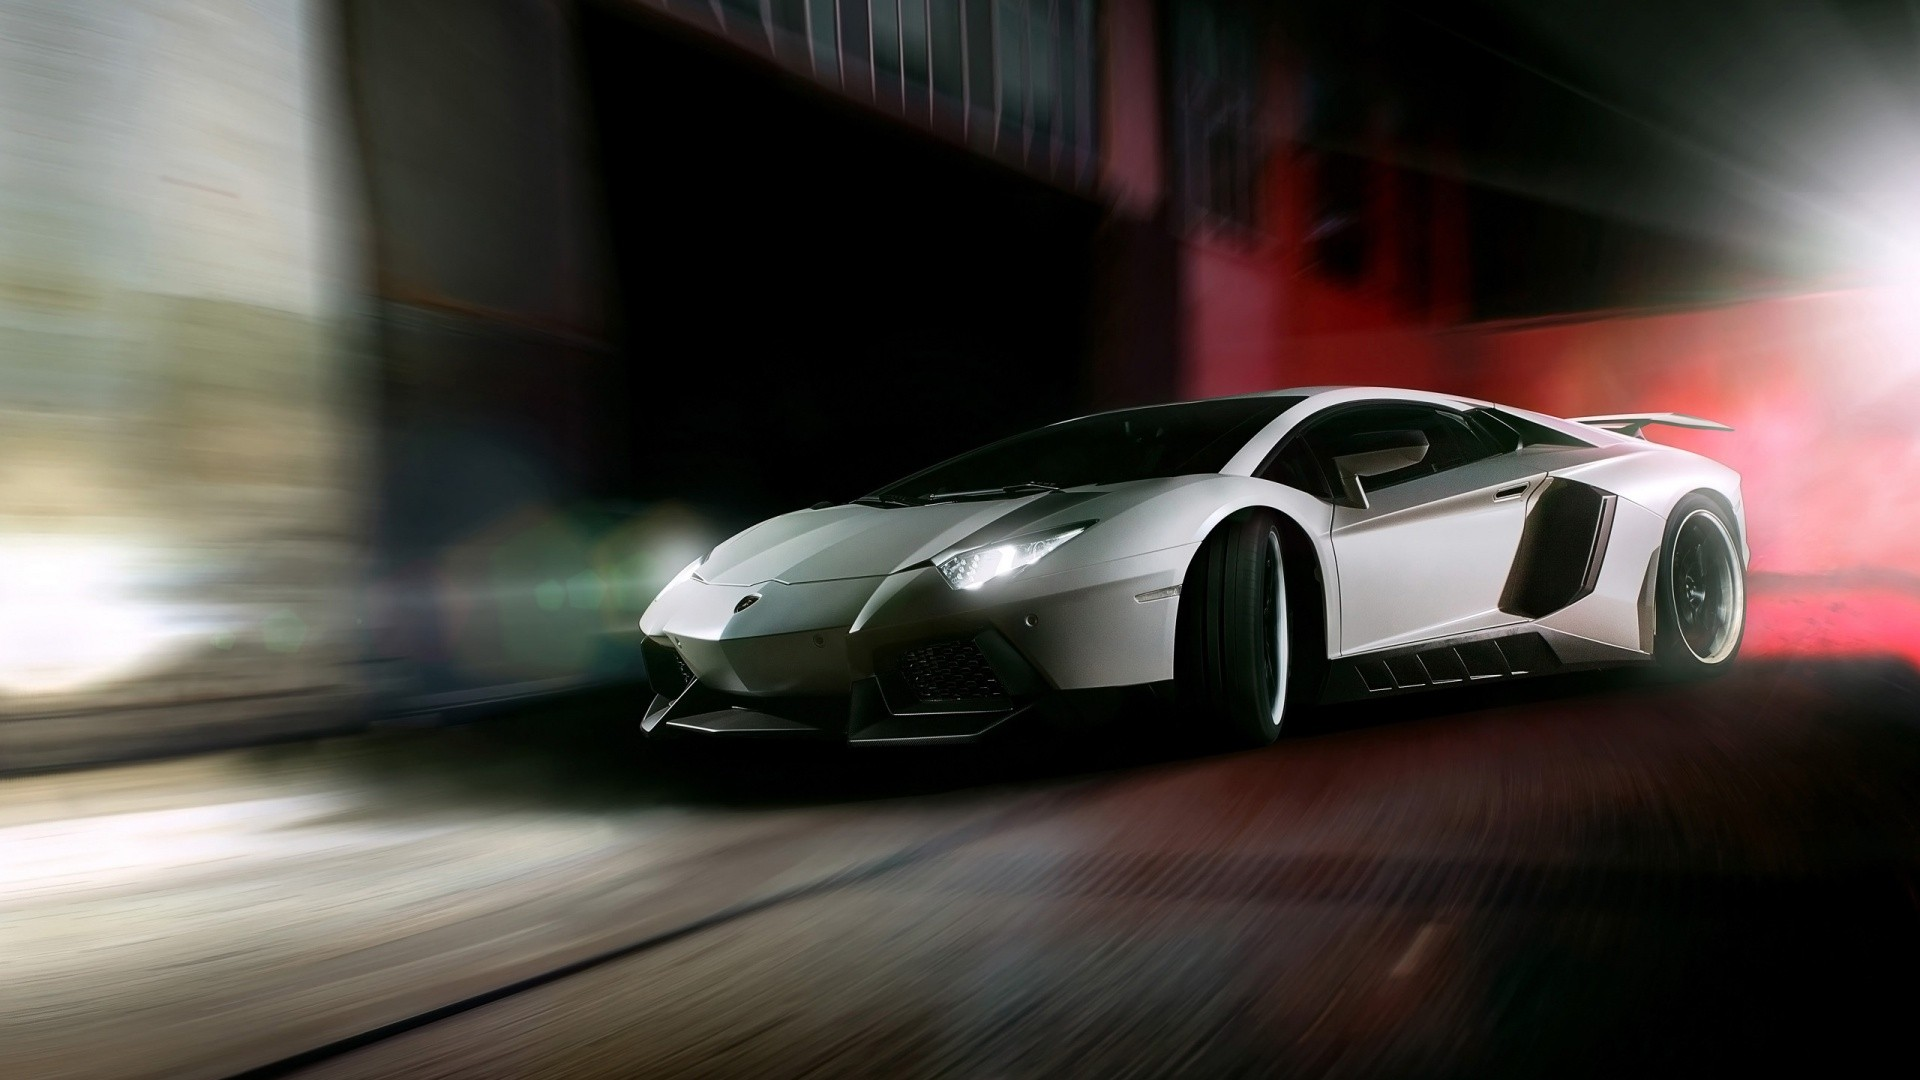 Super Car 5760x1080 Wallpaper Car Blurred Lamborghini Lamborghini Aventador